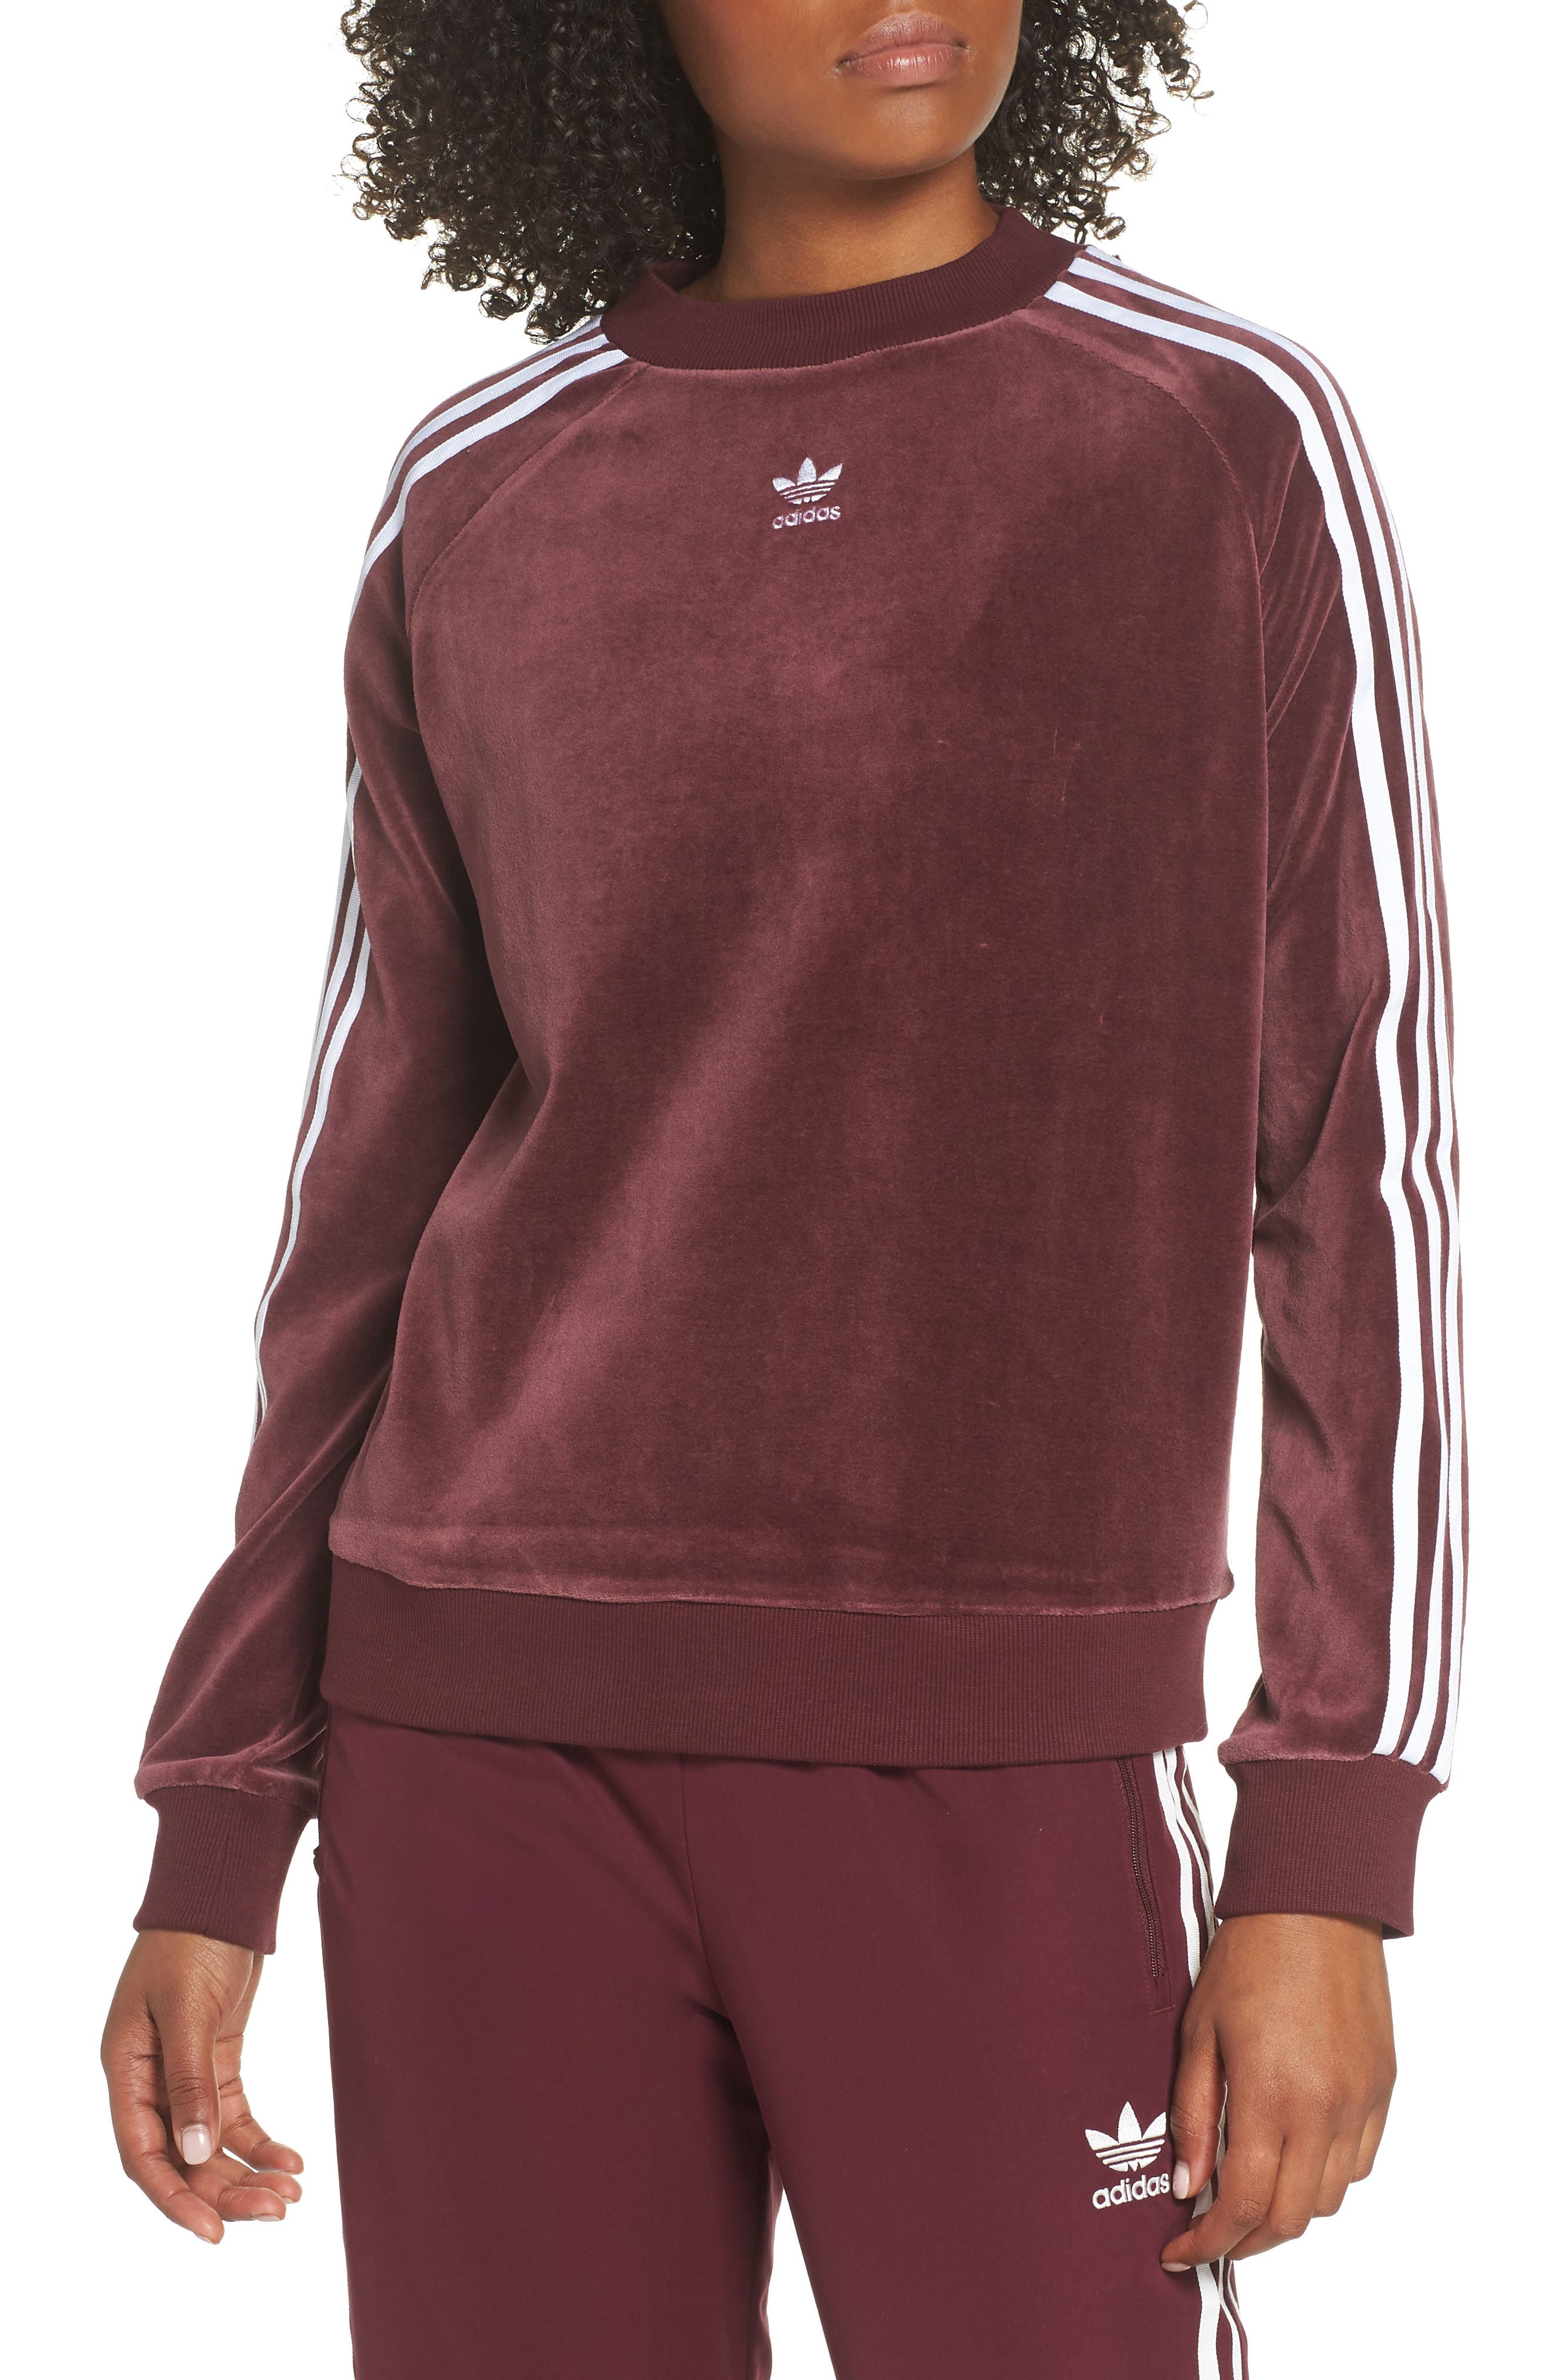 TRF Sweatshirt,                             Main thumbnail 1, color,                             MAROON